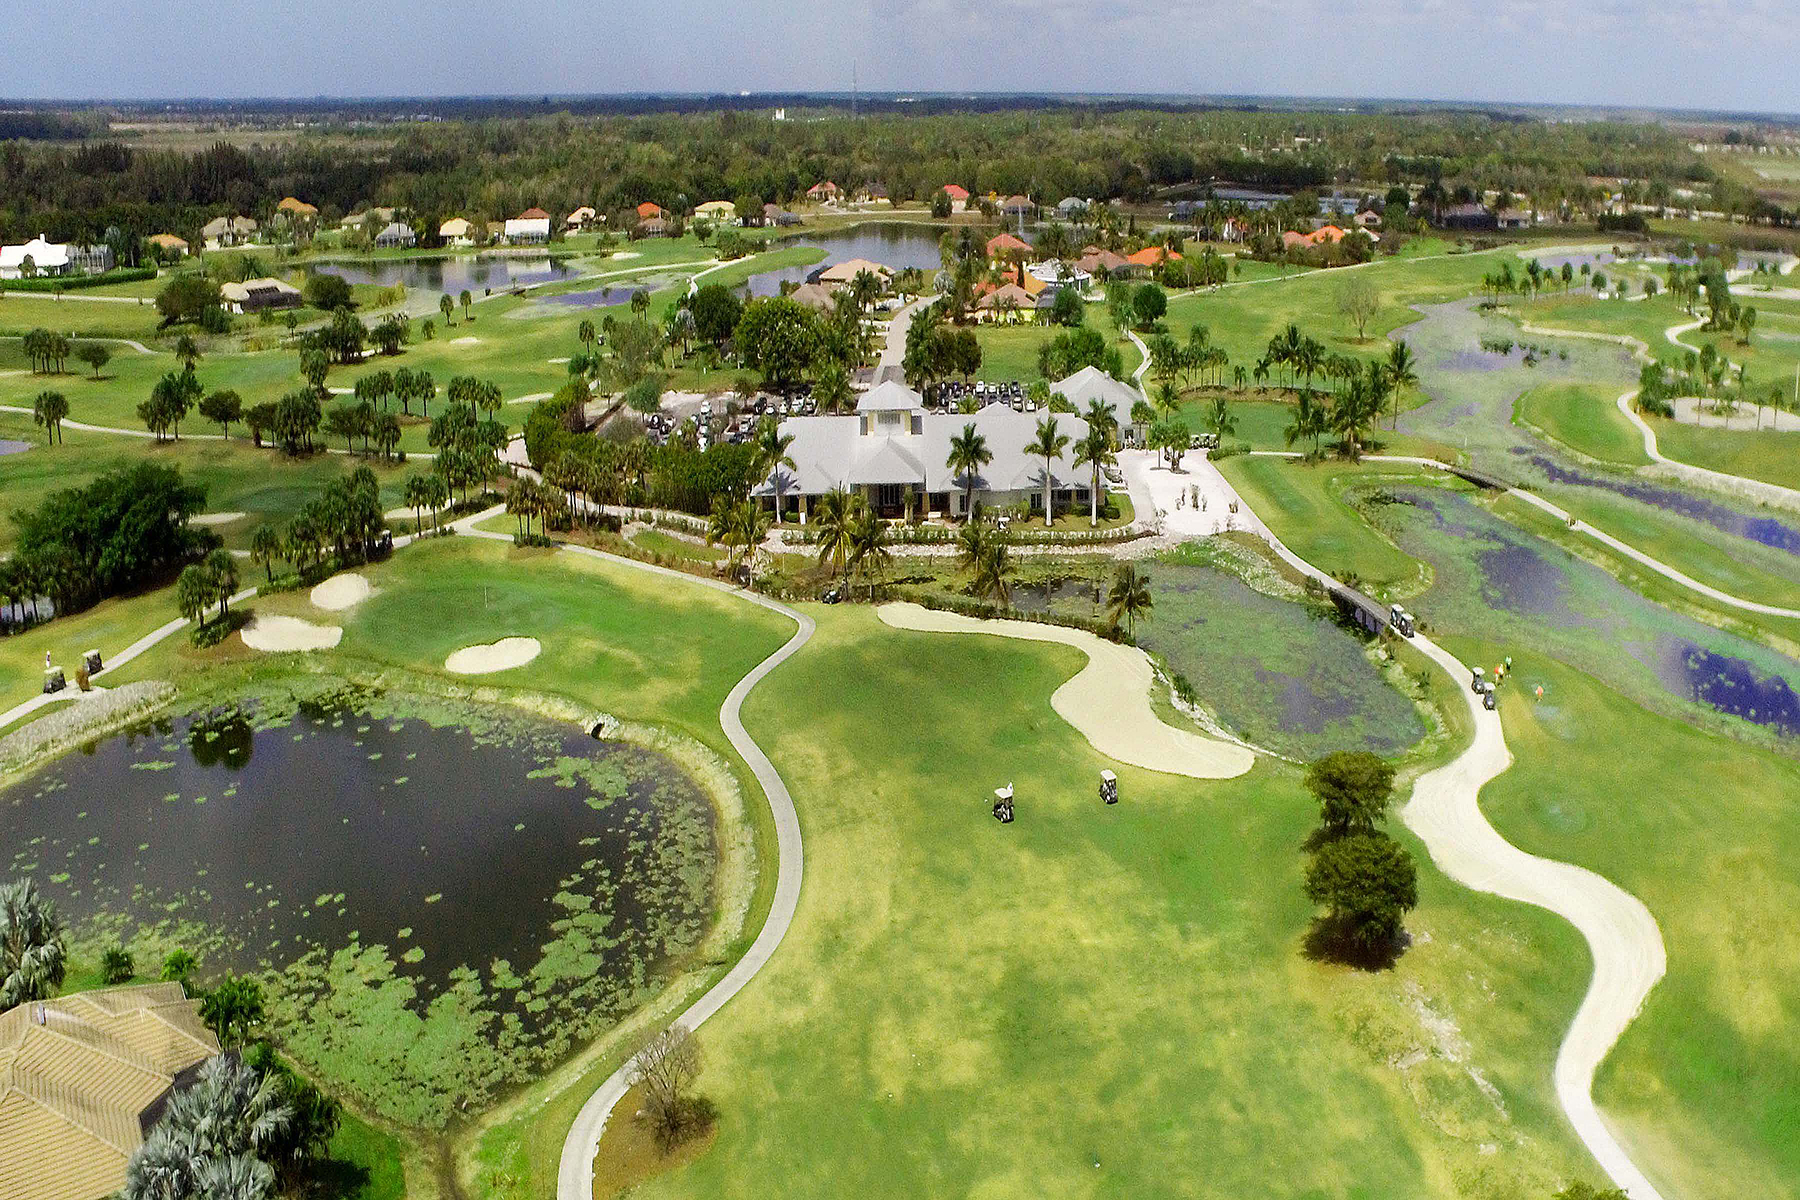 Land for Sale at ROYAL PALM GOLF ESTATES 18570 Royal Hammock Blvd, Naples, Florida 34114 United States